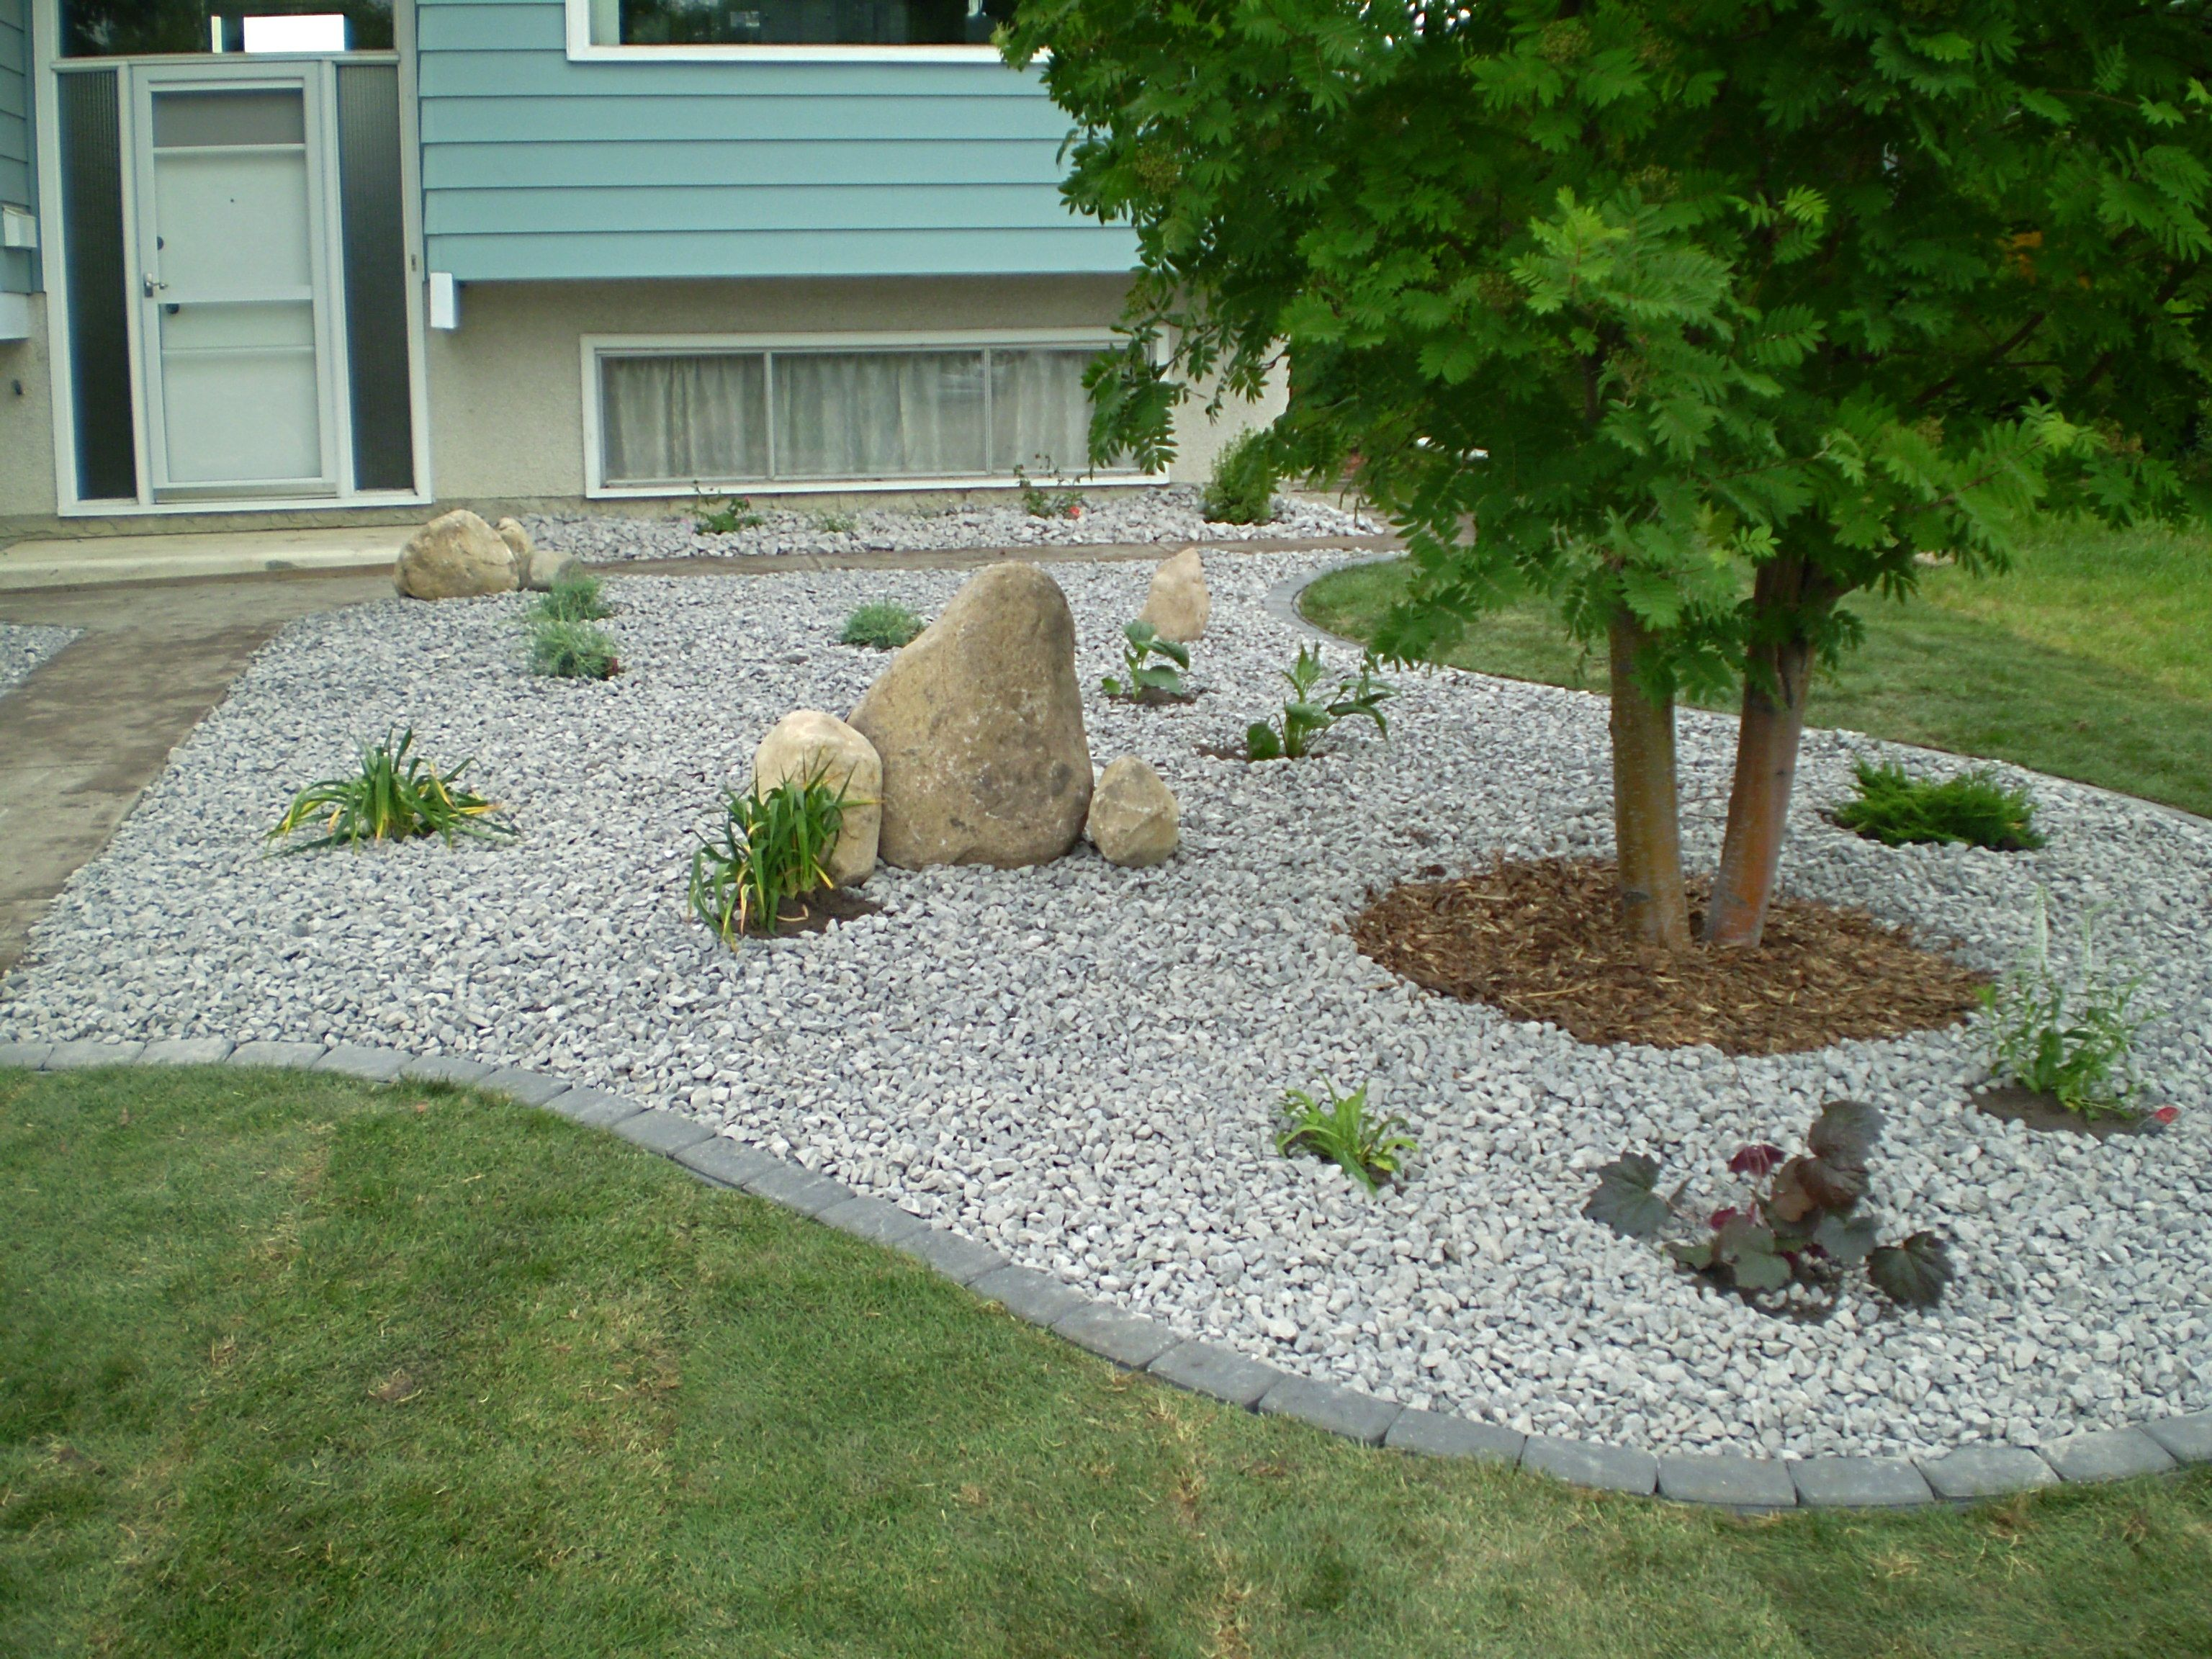 Landscaping with rocks and stones whitemud garden centre for Garden designs using pebbles